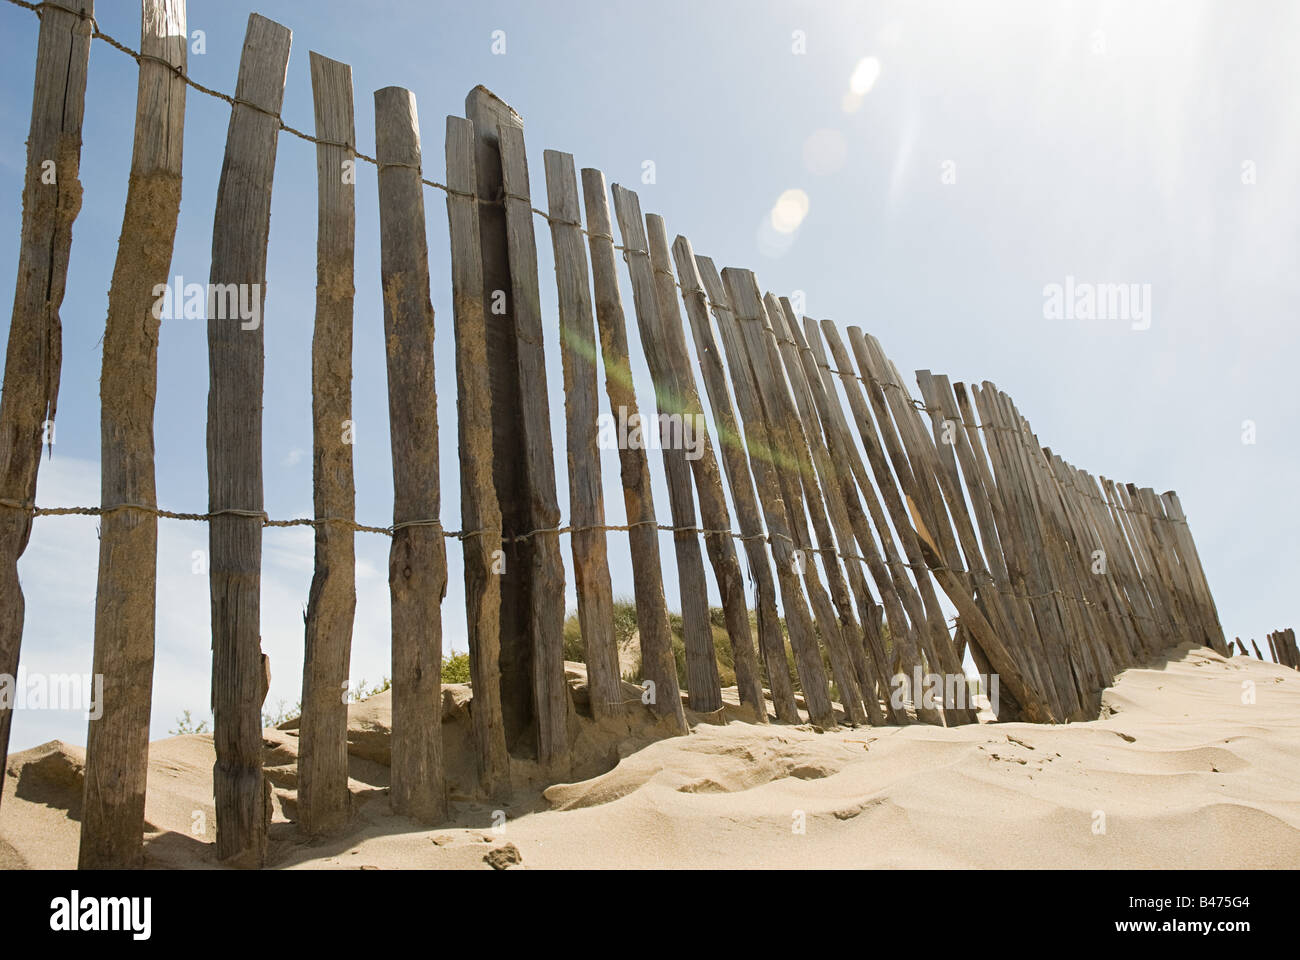 Fence on a beach - Stock Image